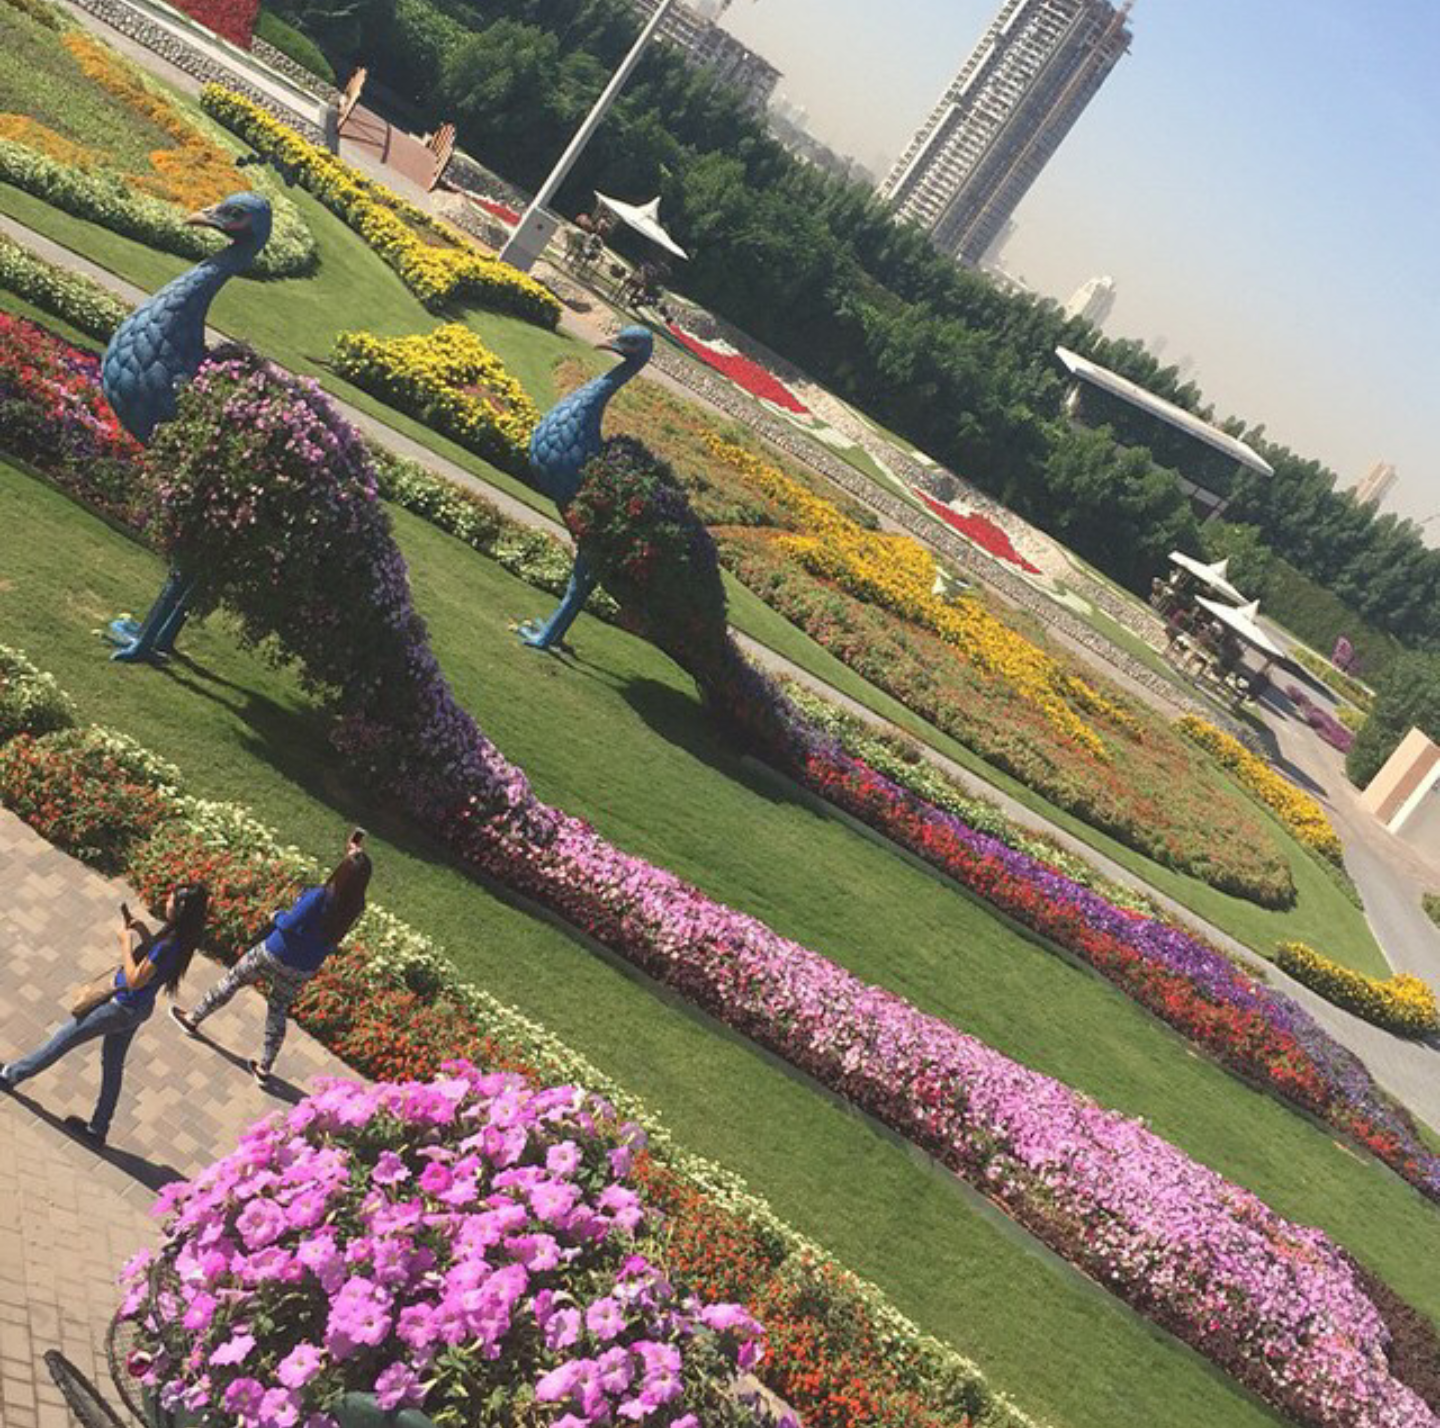 Dubai Miracle garden is the largest vertical garden in the